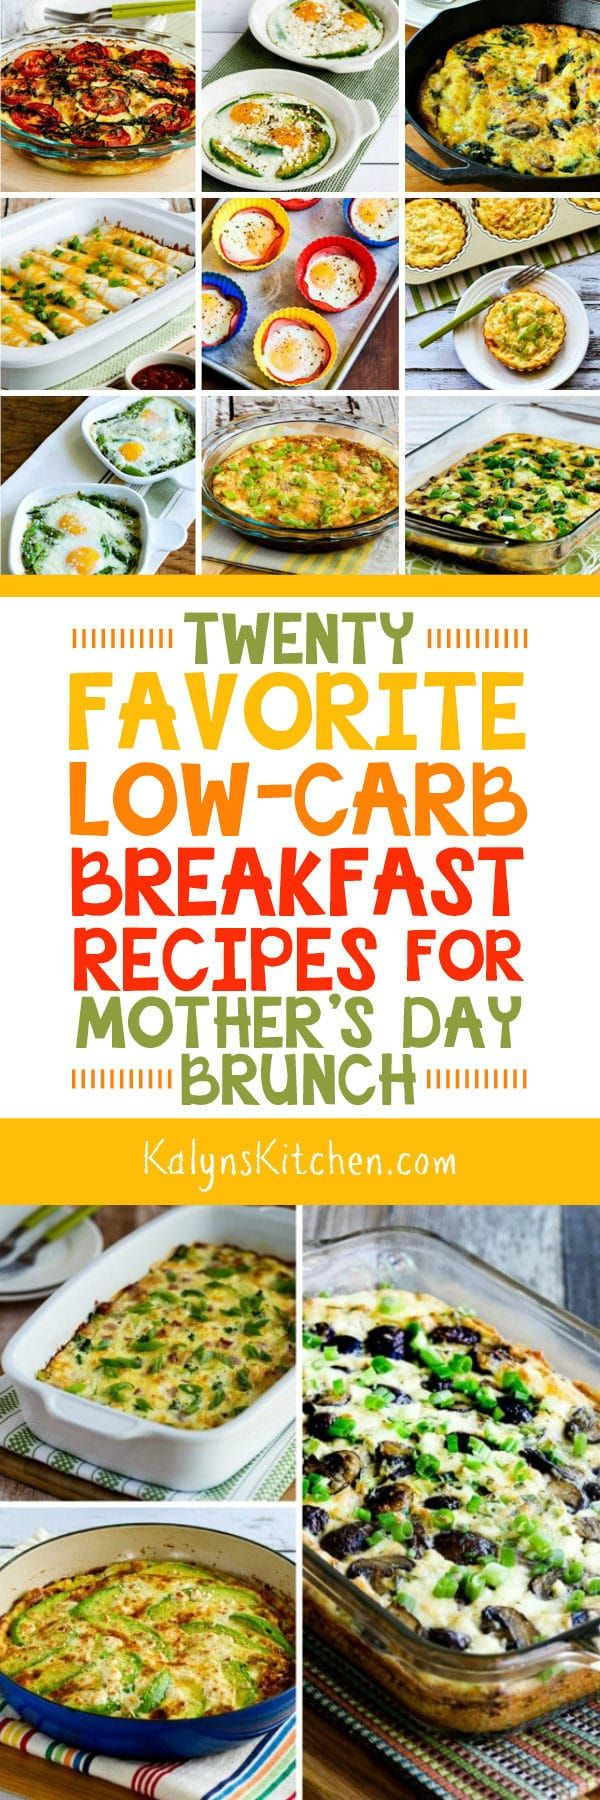 Twenty Favorite Low Carb Breakfast Recipes For Mothers Day Brunch